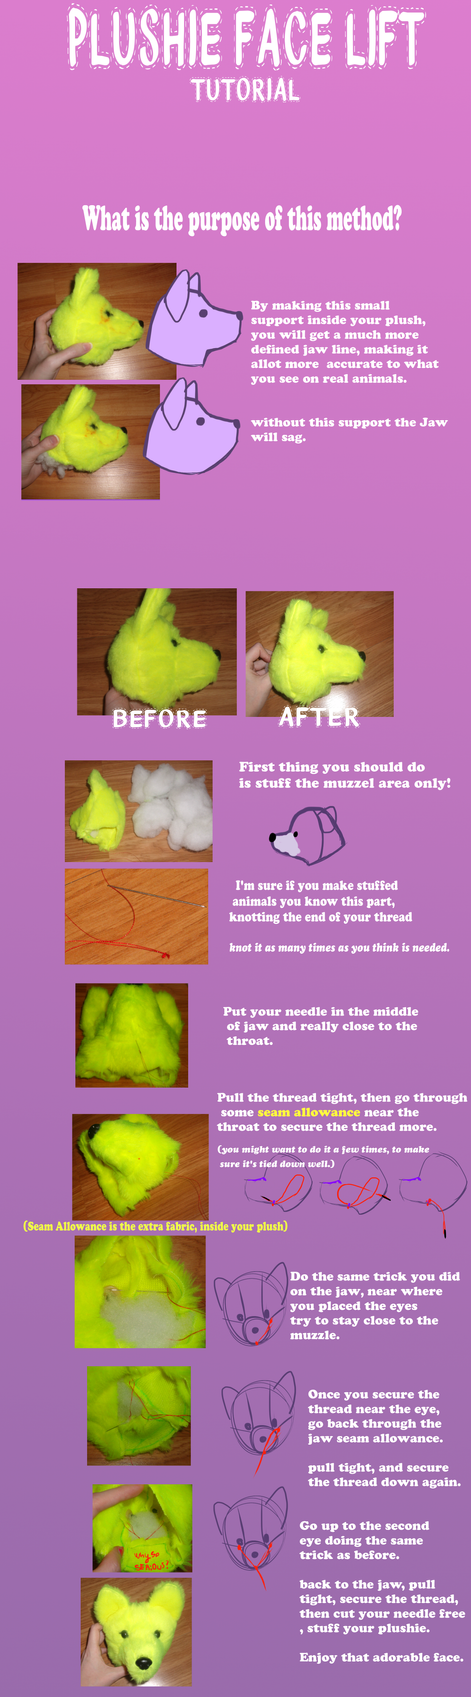 Plushie face lift tutorial by VengefulSpirits